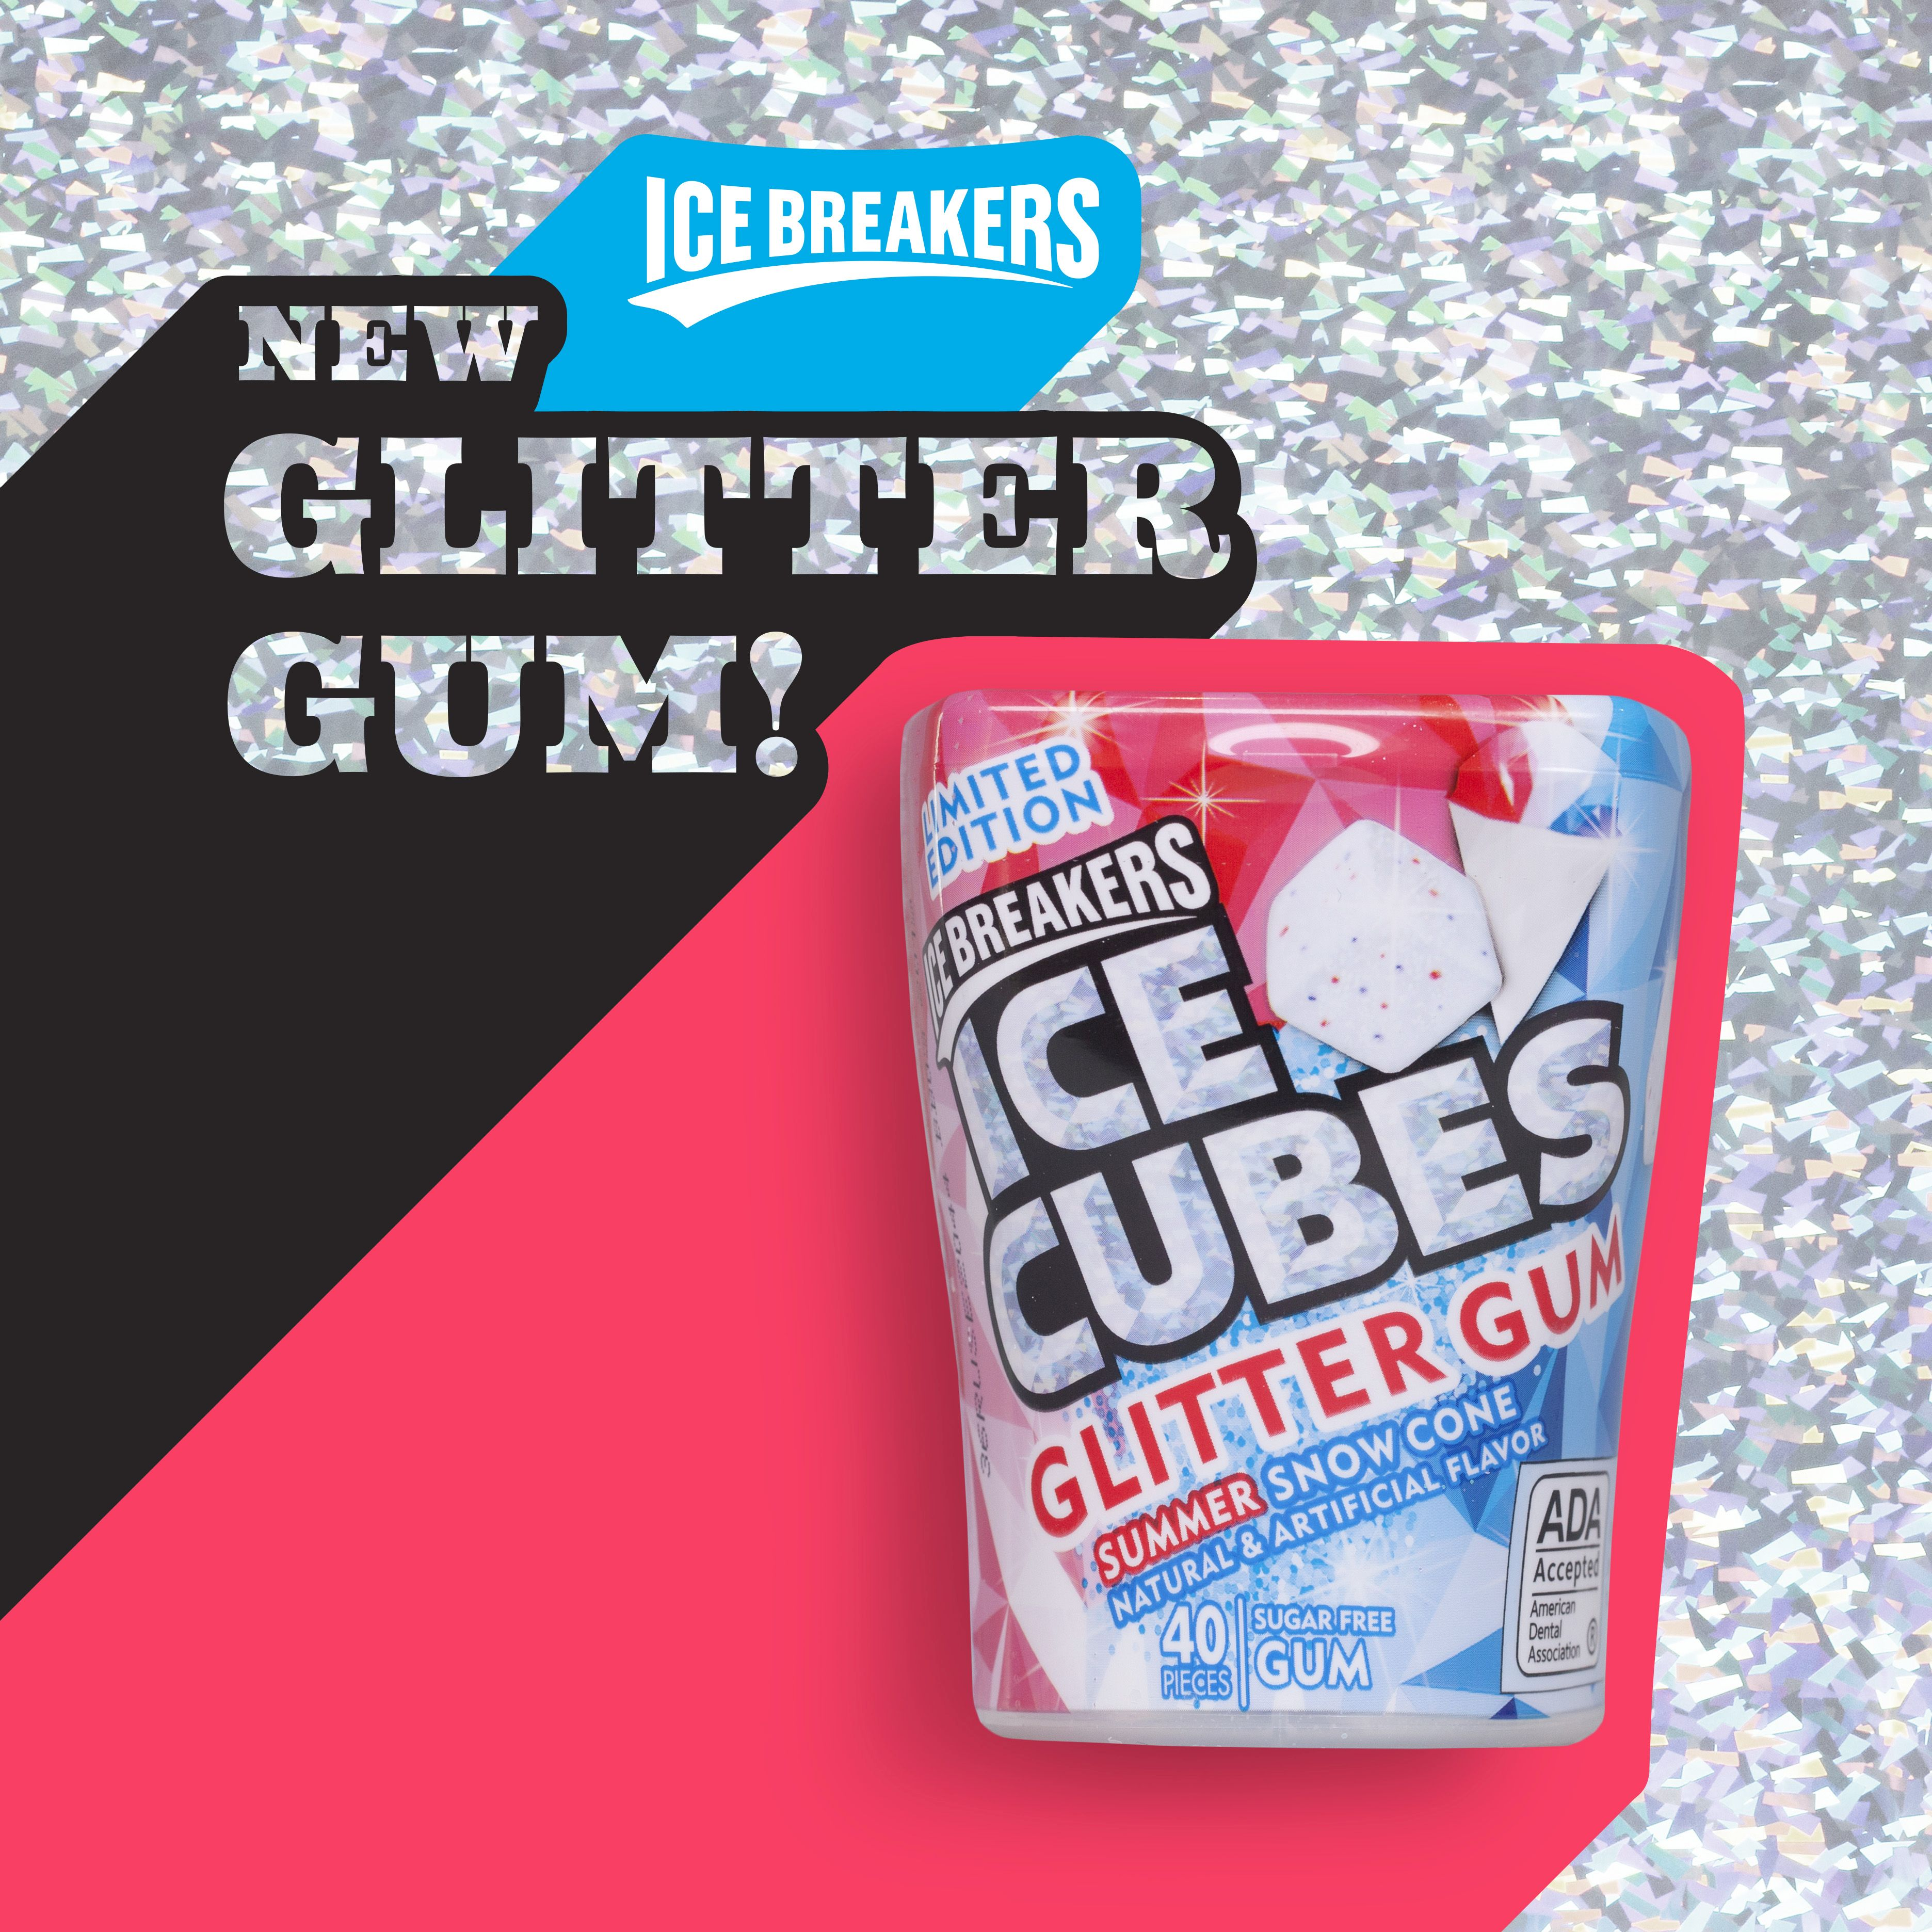 ICE BREAKERS ICE CUBES Glitter Gum Summer Snow Cone